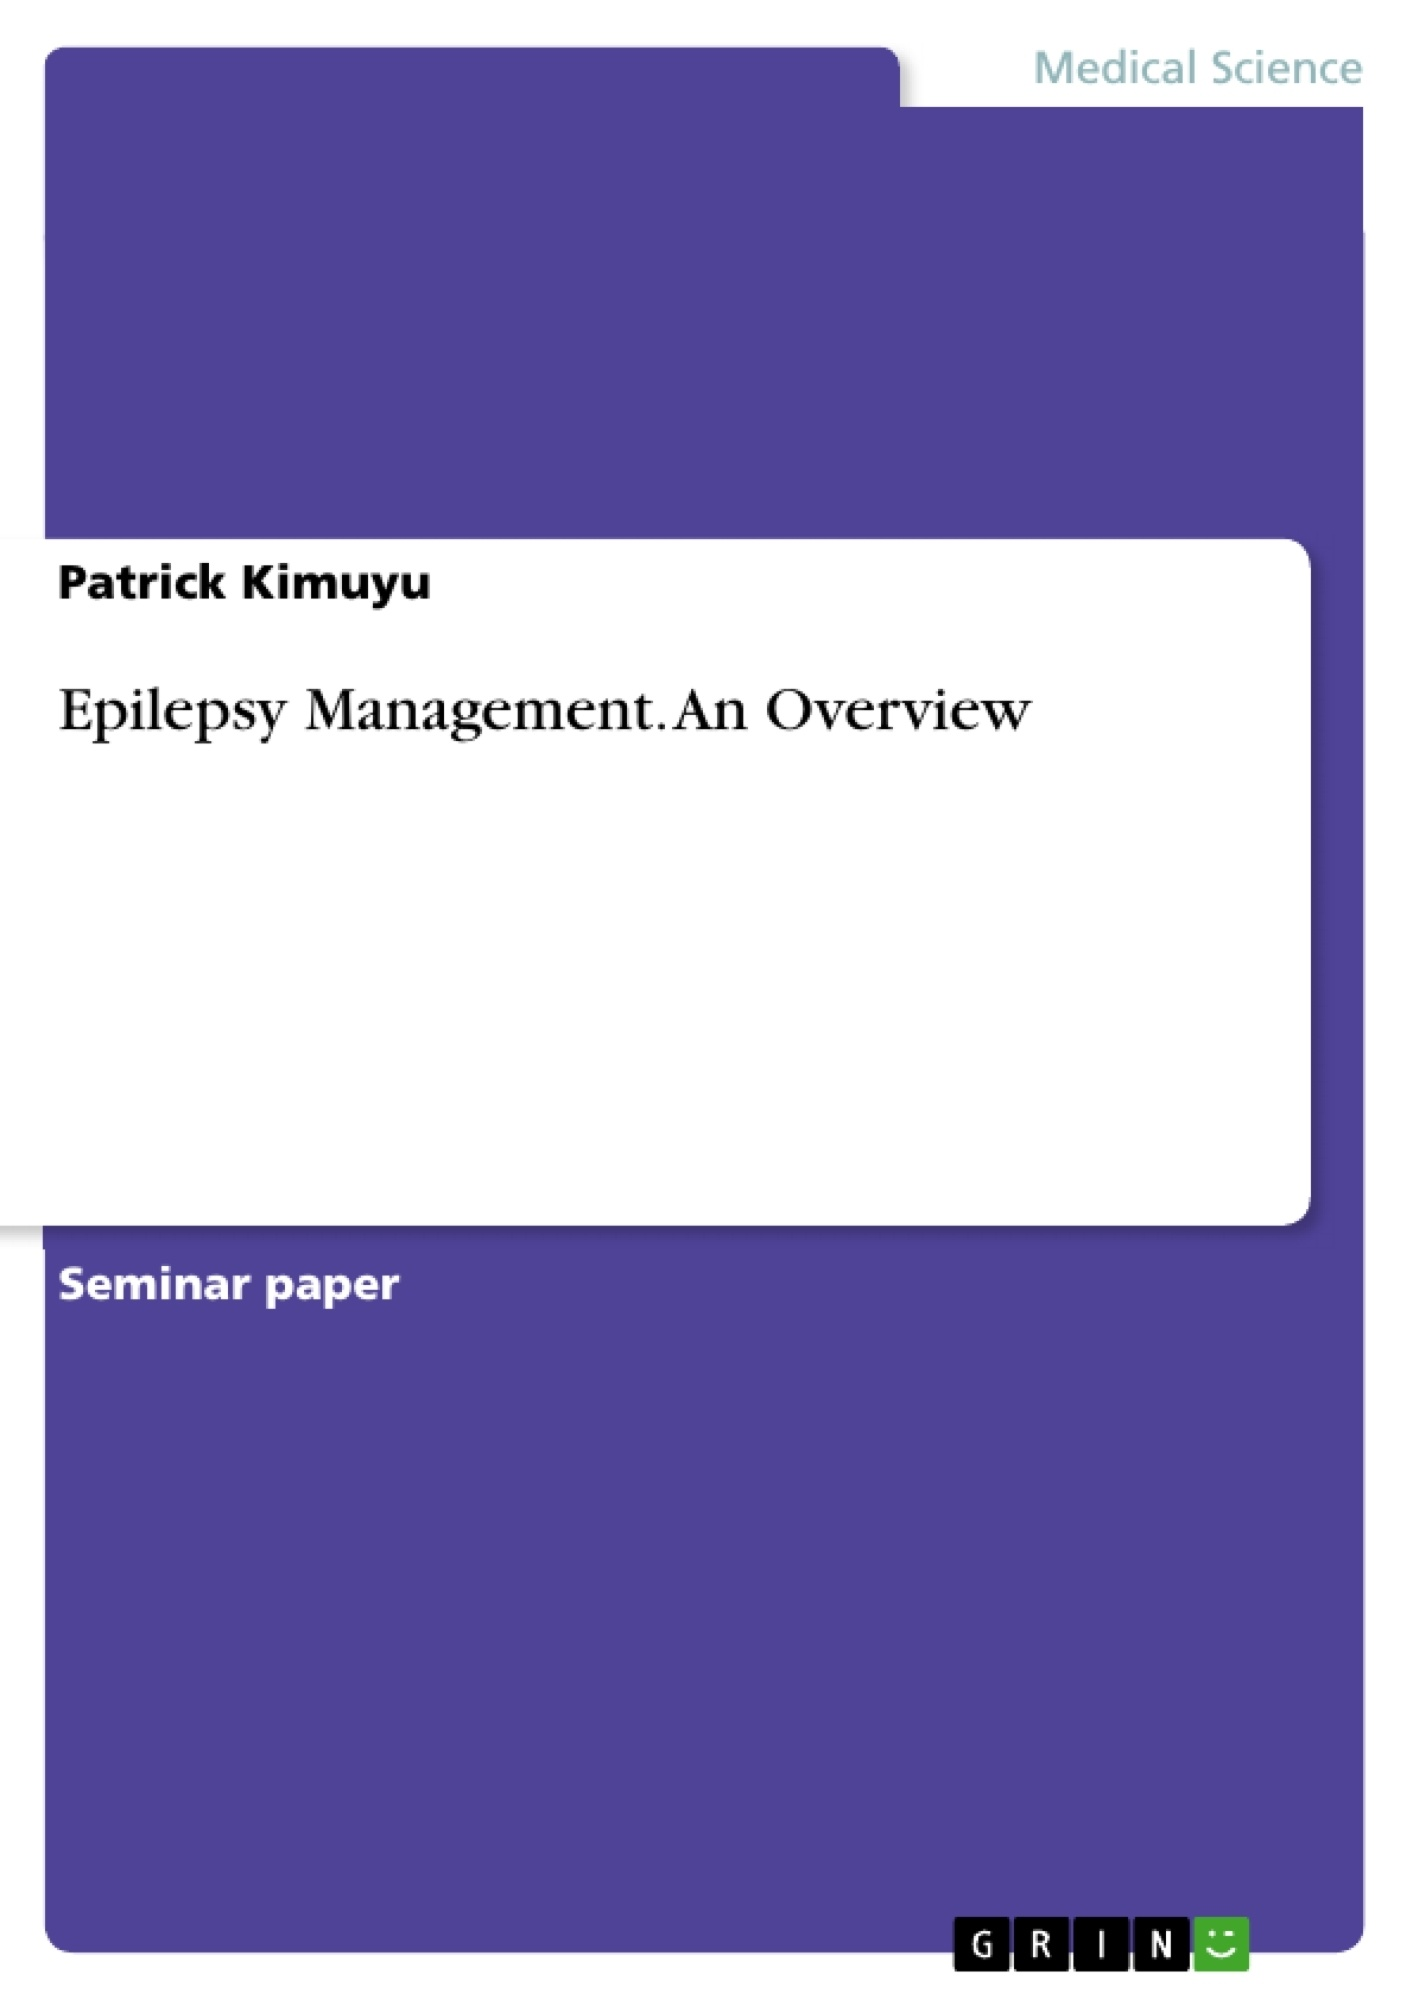 Title: Epilepsy Management. An Overview